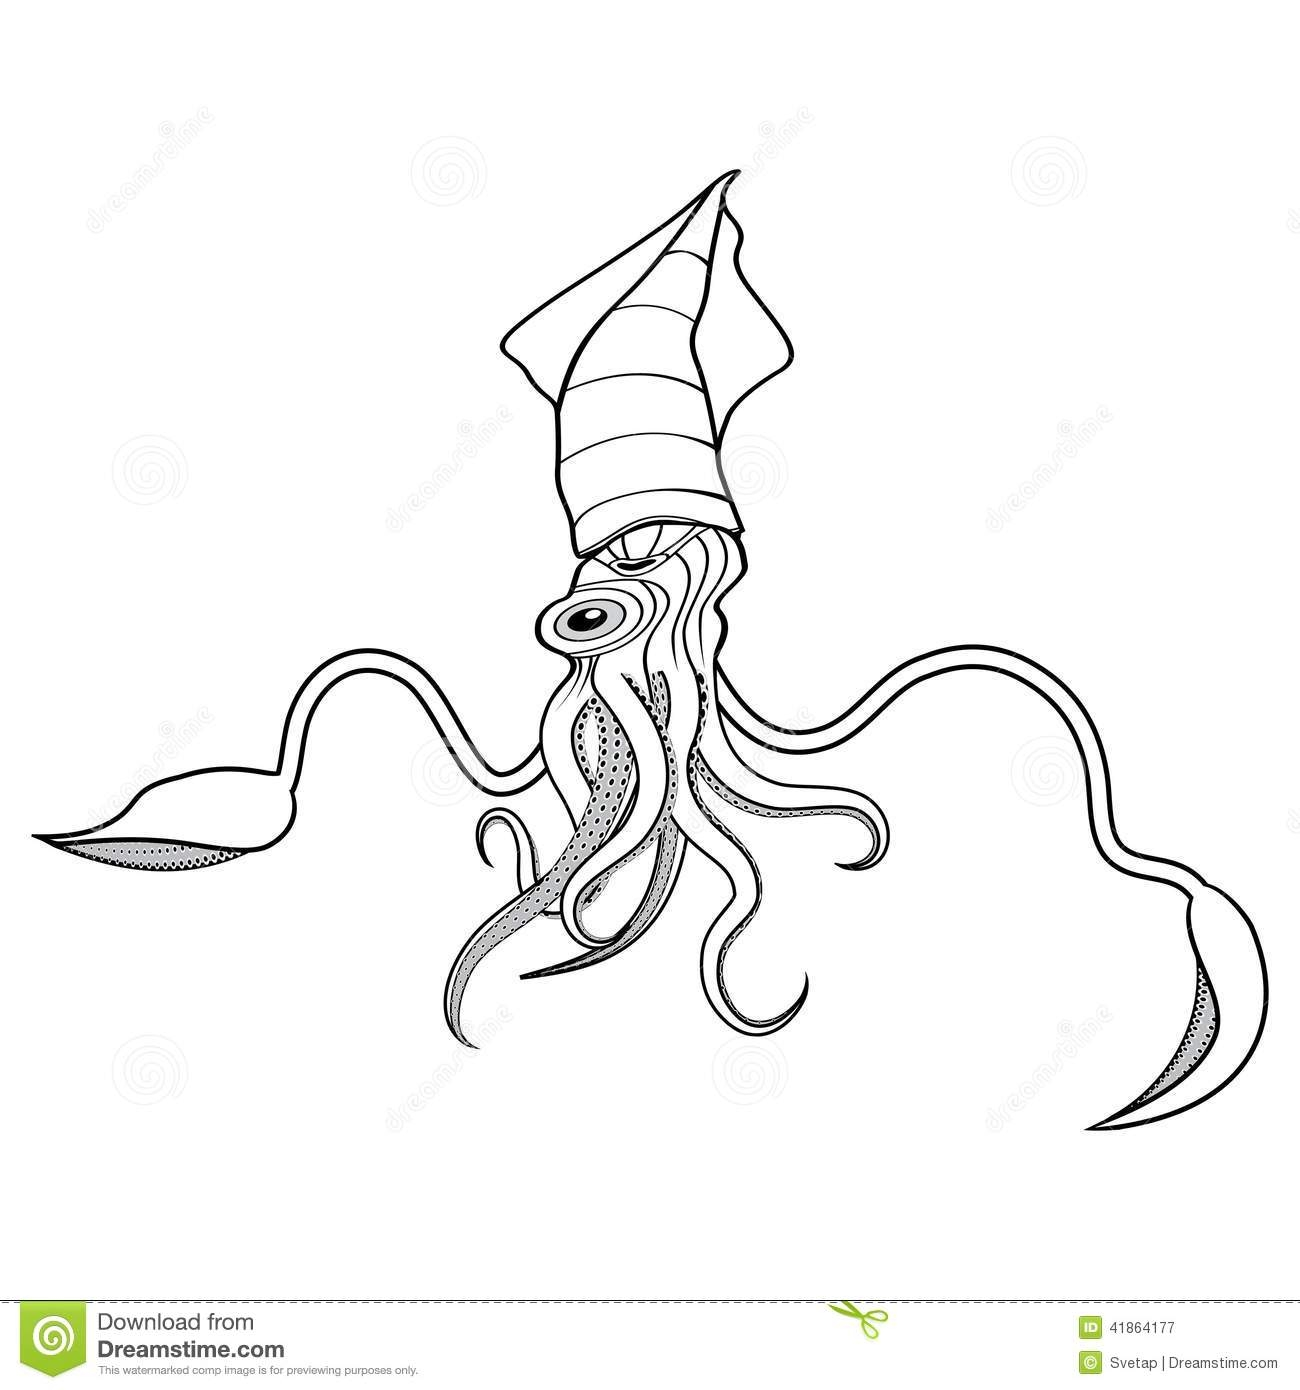 sea life coloring pages - stock illustration giant squid illustration ocean water animal sketch tattoo symbol t shirt icon diving design image